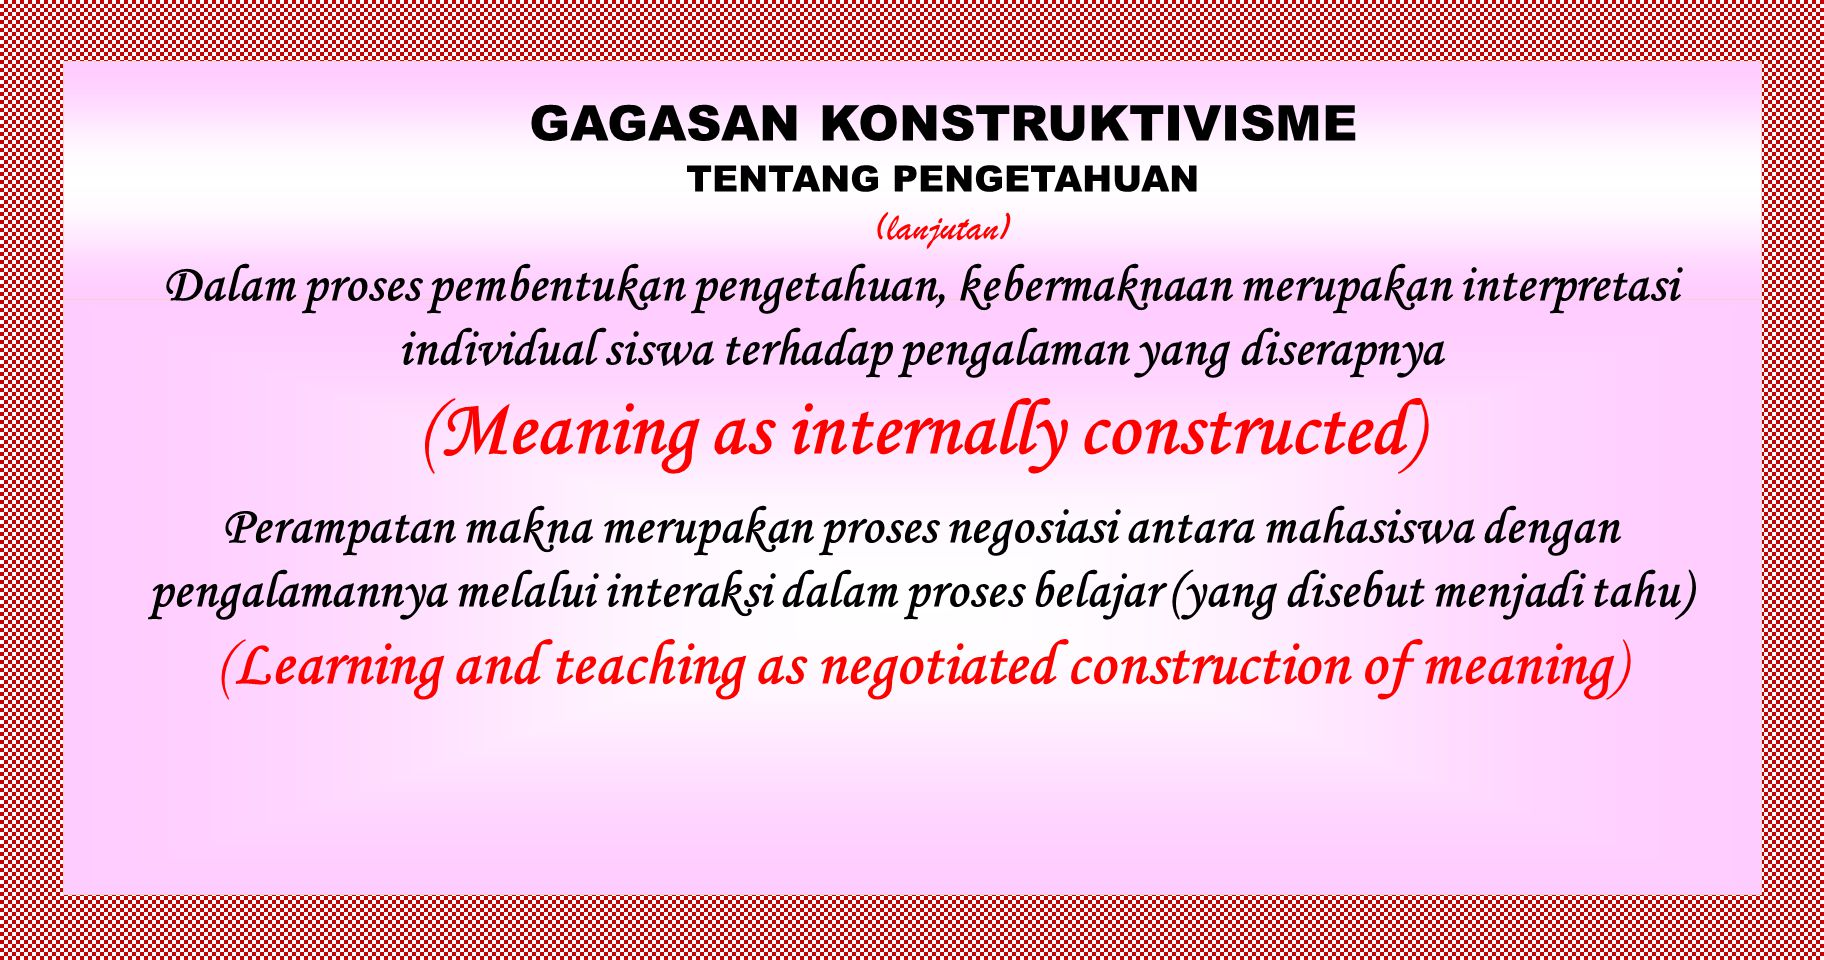 (Meaning as internally constructed)